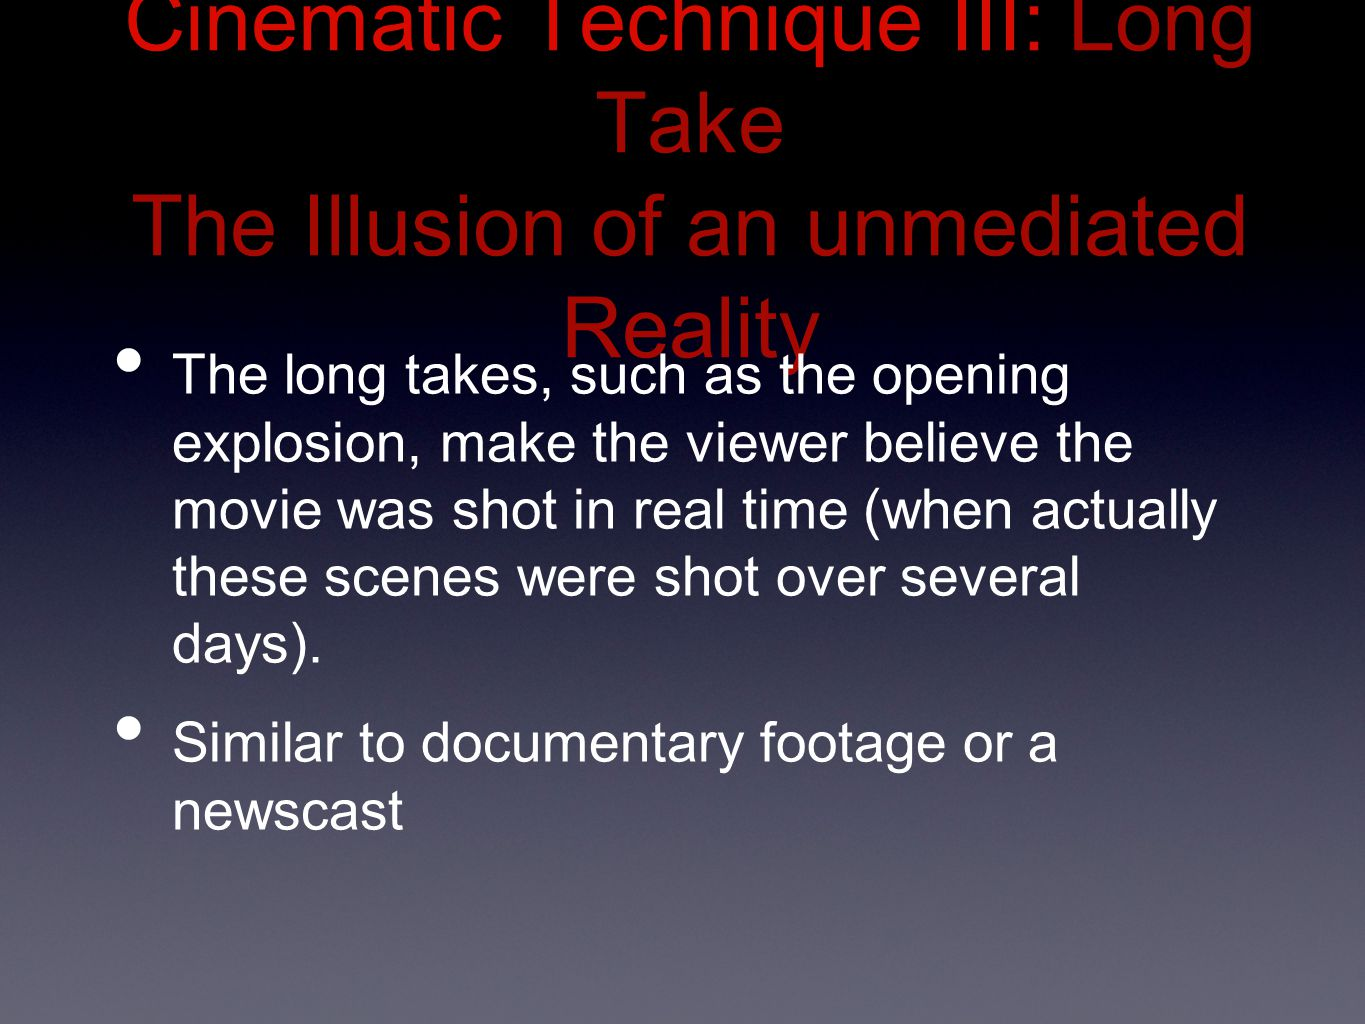 Cinematic Technique III: Long Take The Illusion of an unmediated Reality The long takes, such as the opening explosion, make the viewer believe the movie was shot in real time (when actually these scenes were shot over several days).